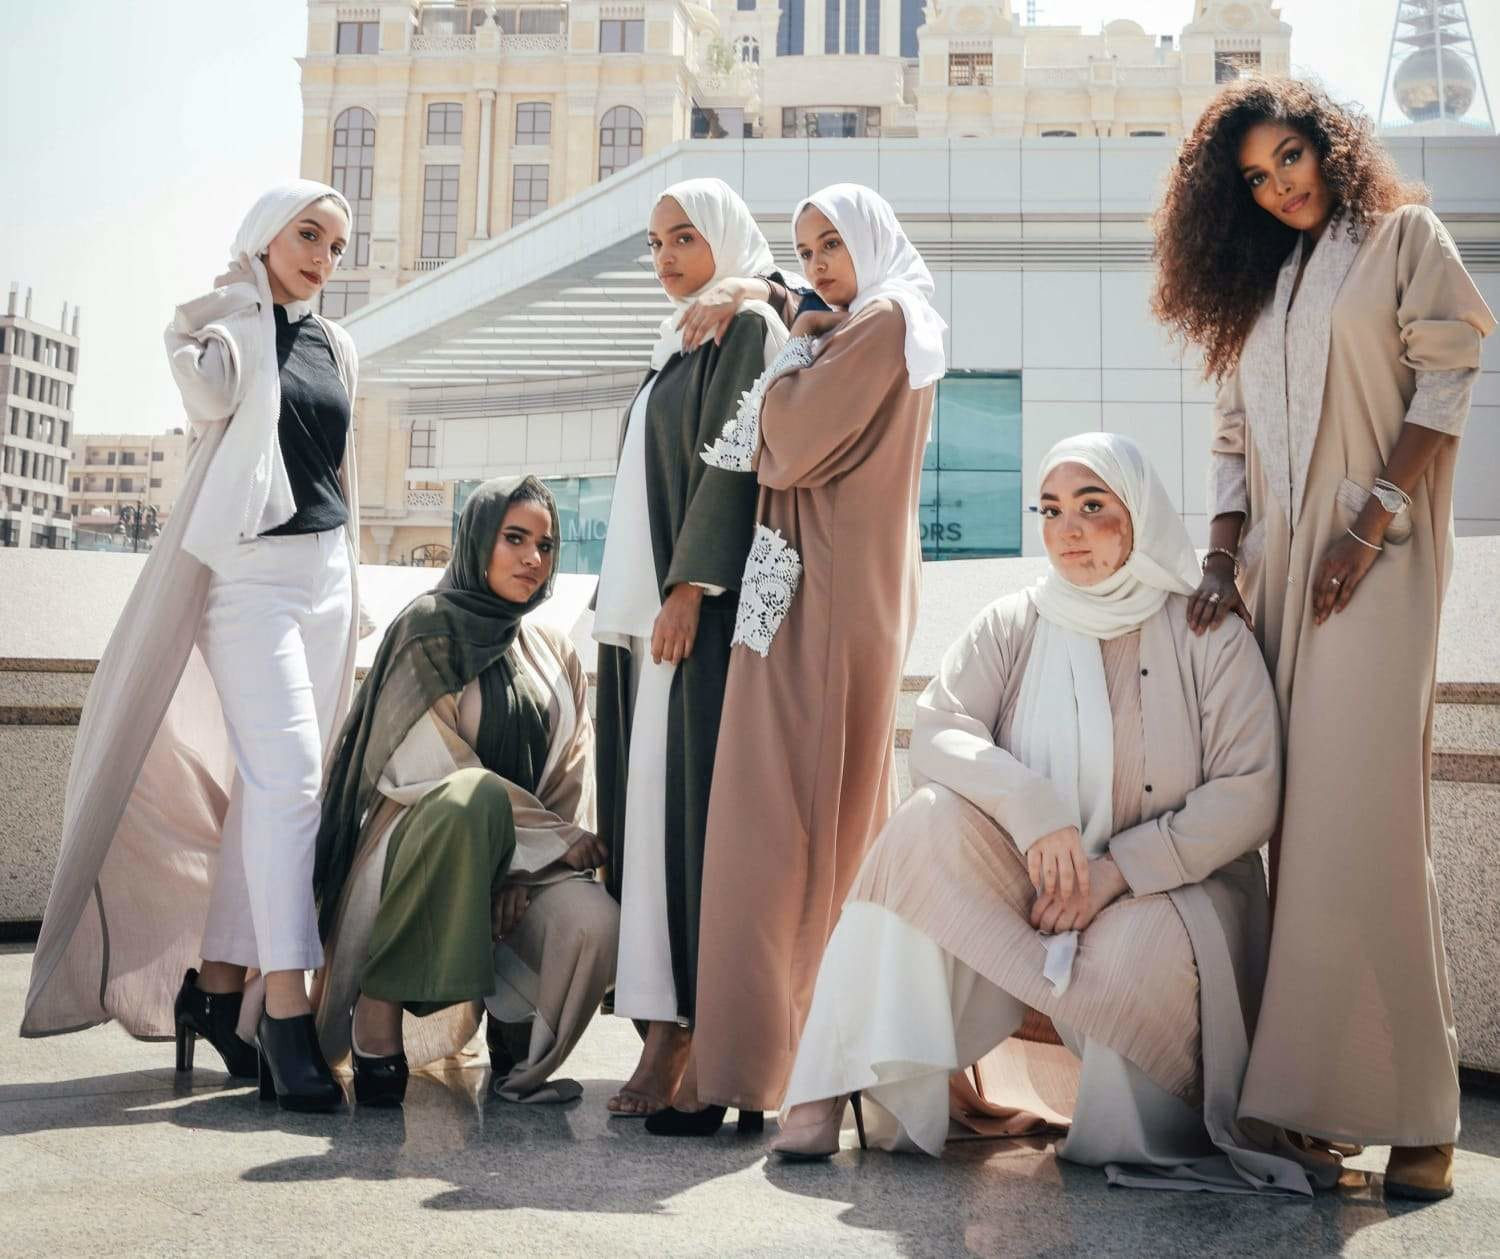 The Must-Have Trends in Arab Women's Clothing